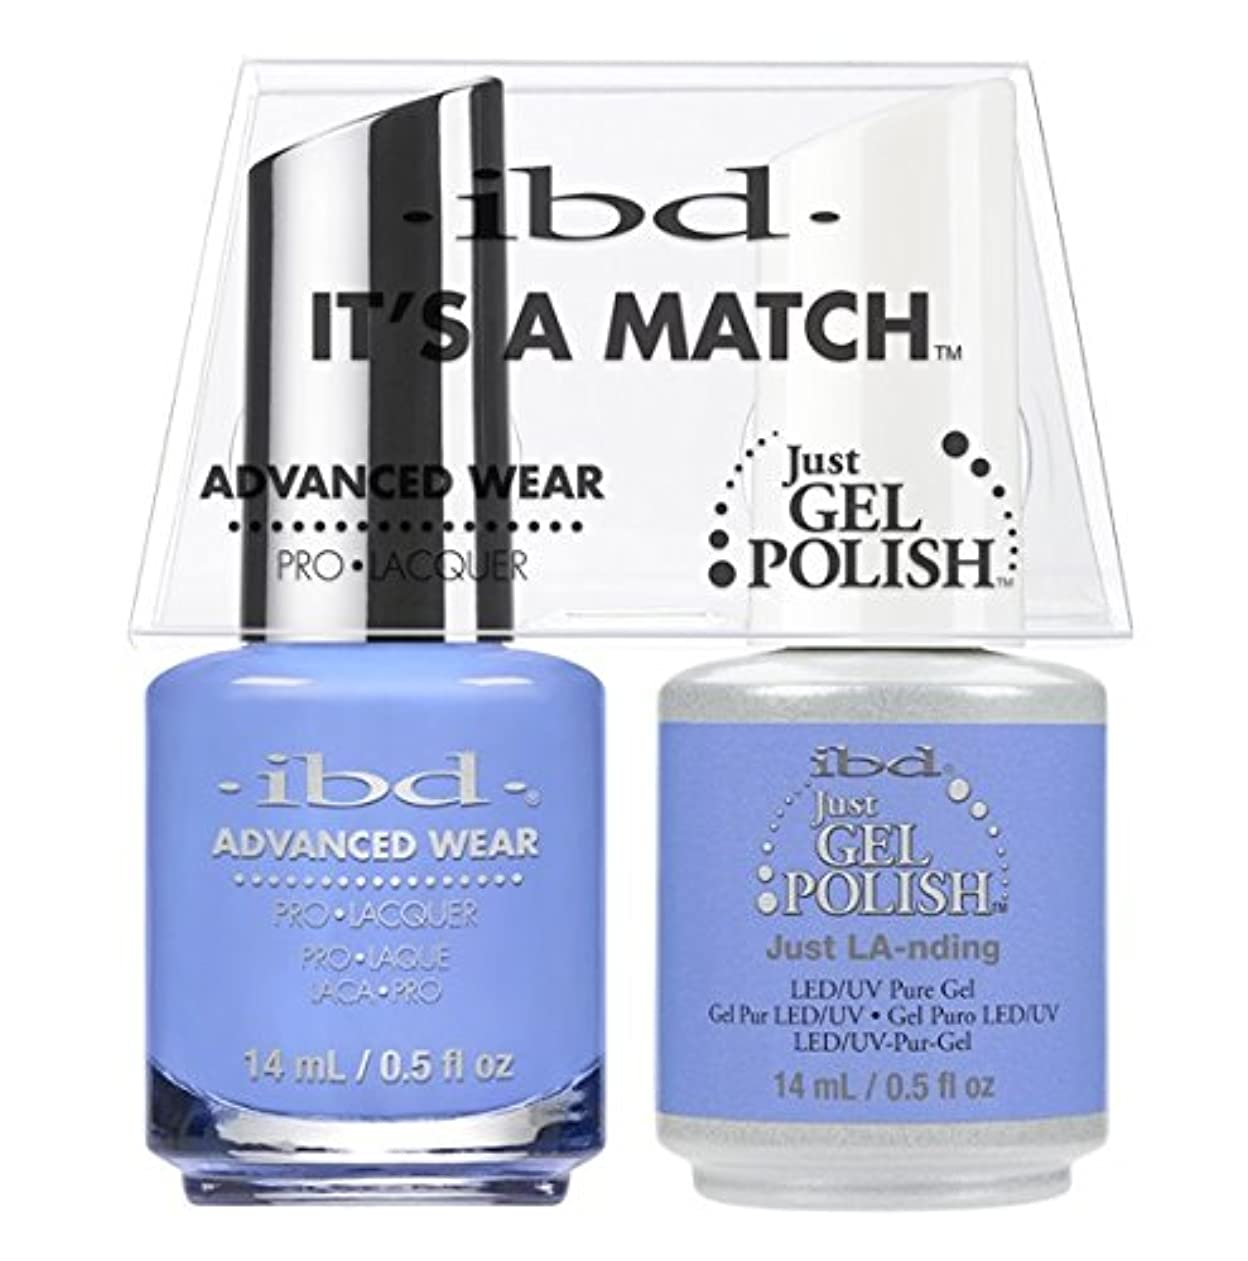 ibd - It's A Match -Duo Pack- Destination Collection - Just LA-nding - 14 mL / 0.5 oz Each